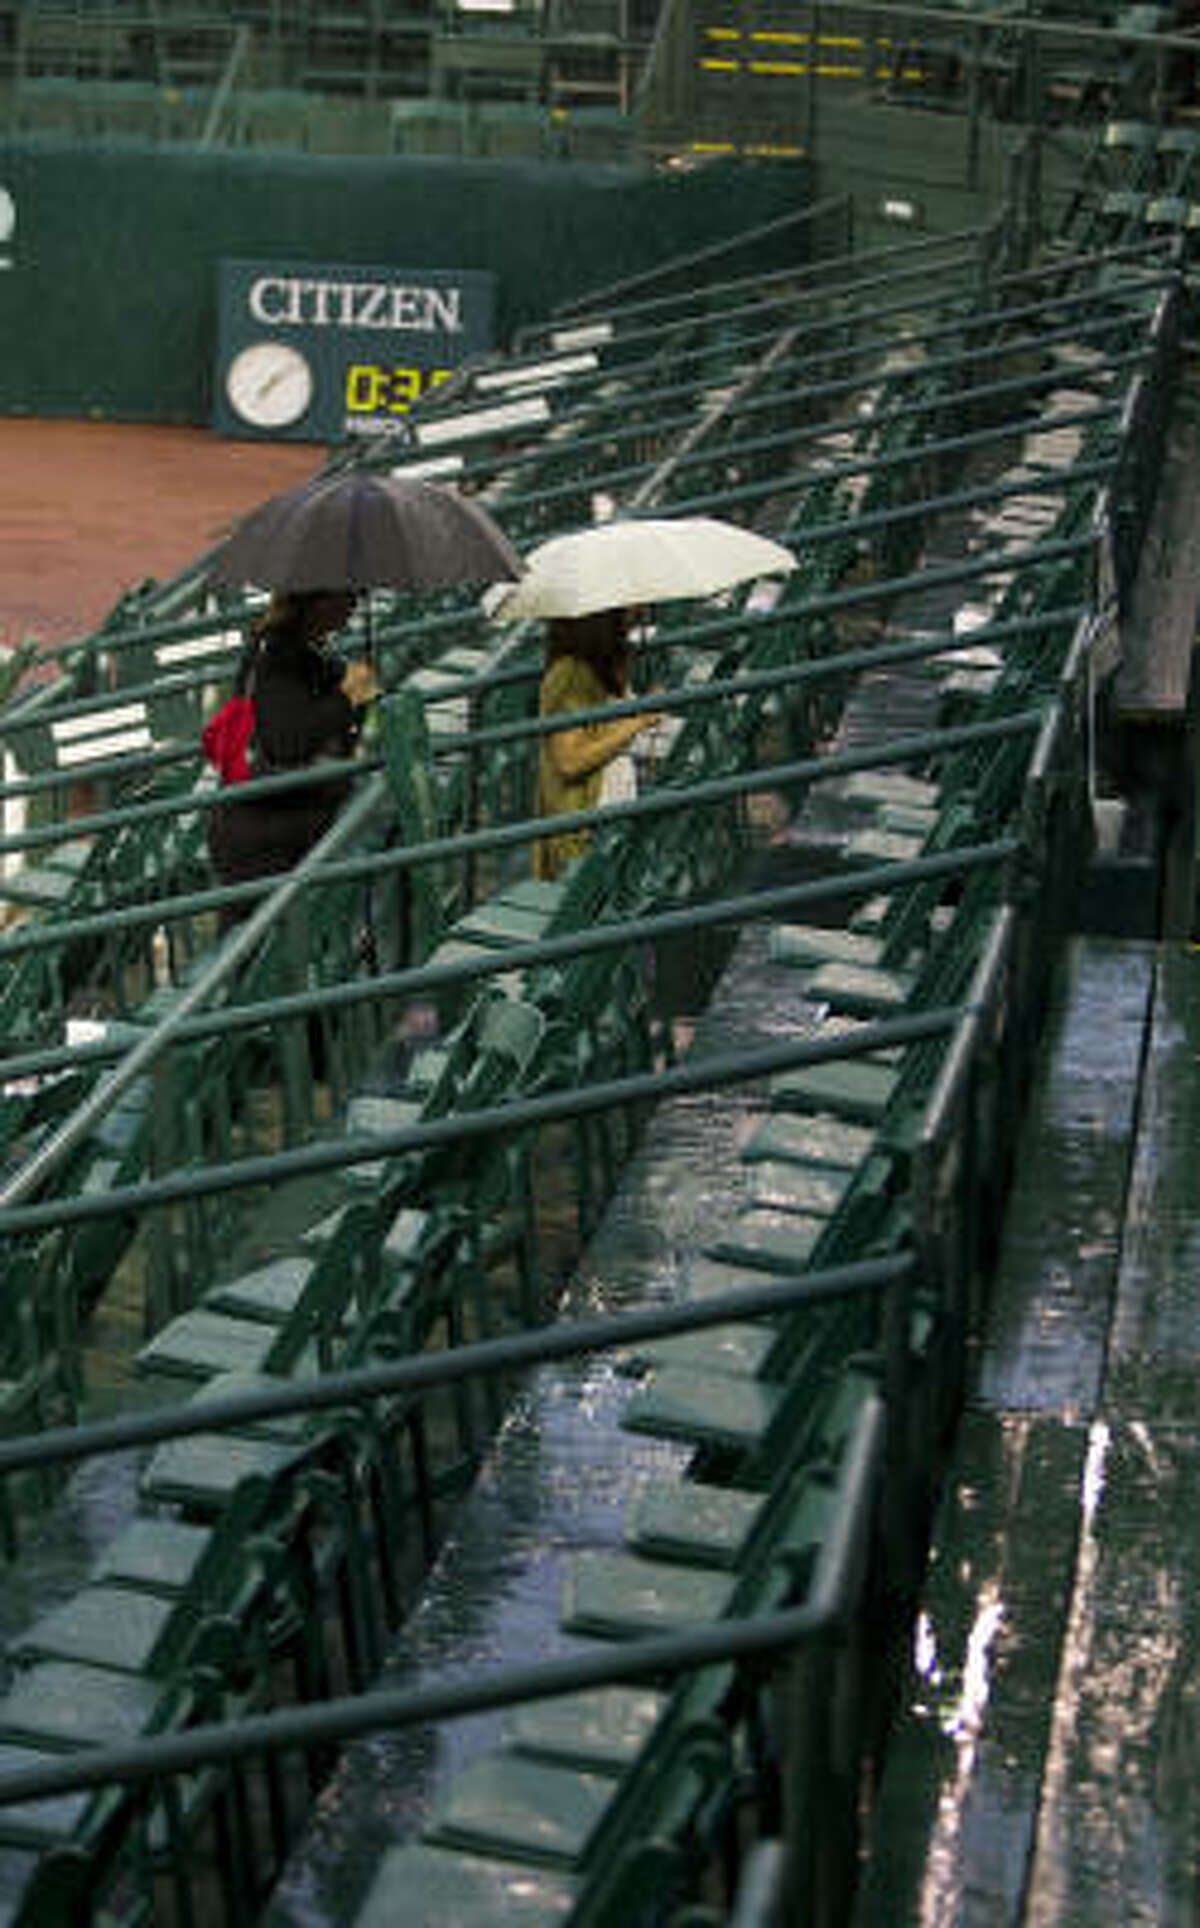 Tennis fans take cover under umbrellas during a rain delay at the U.S. Clay Court Championships on Wednesday, April 7, 2010.